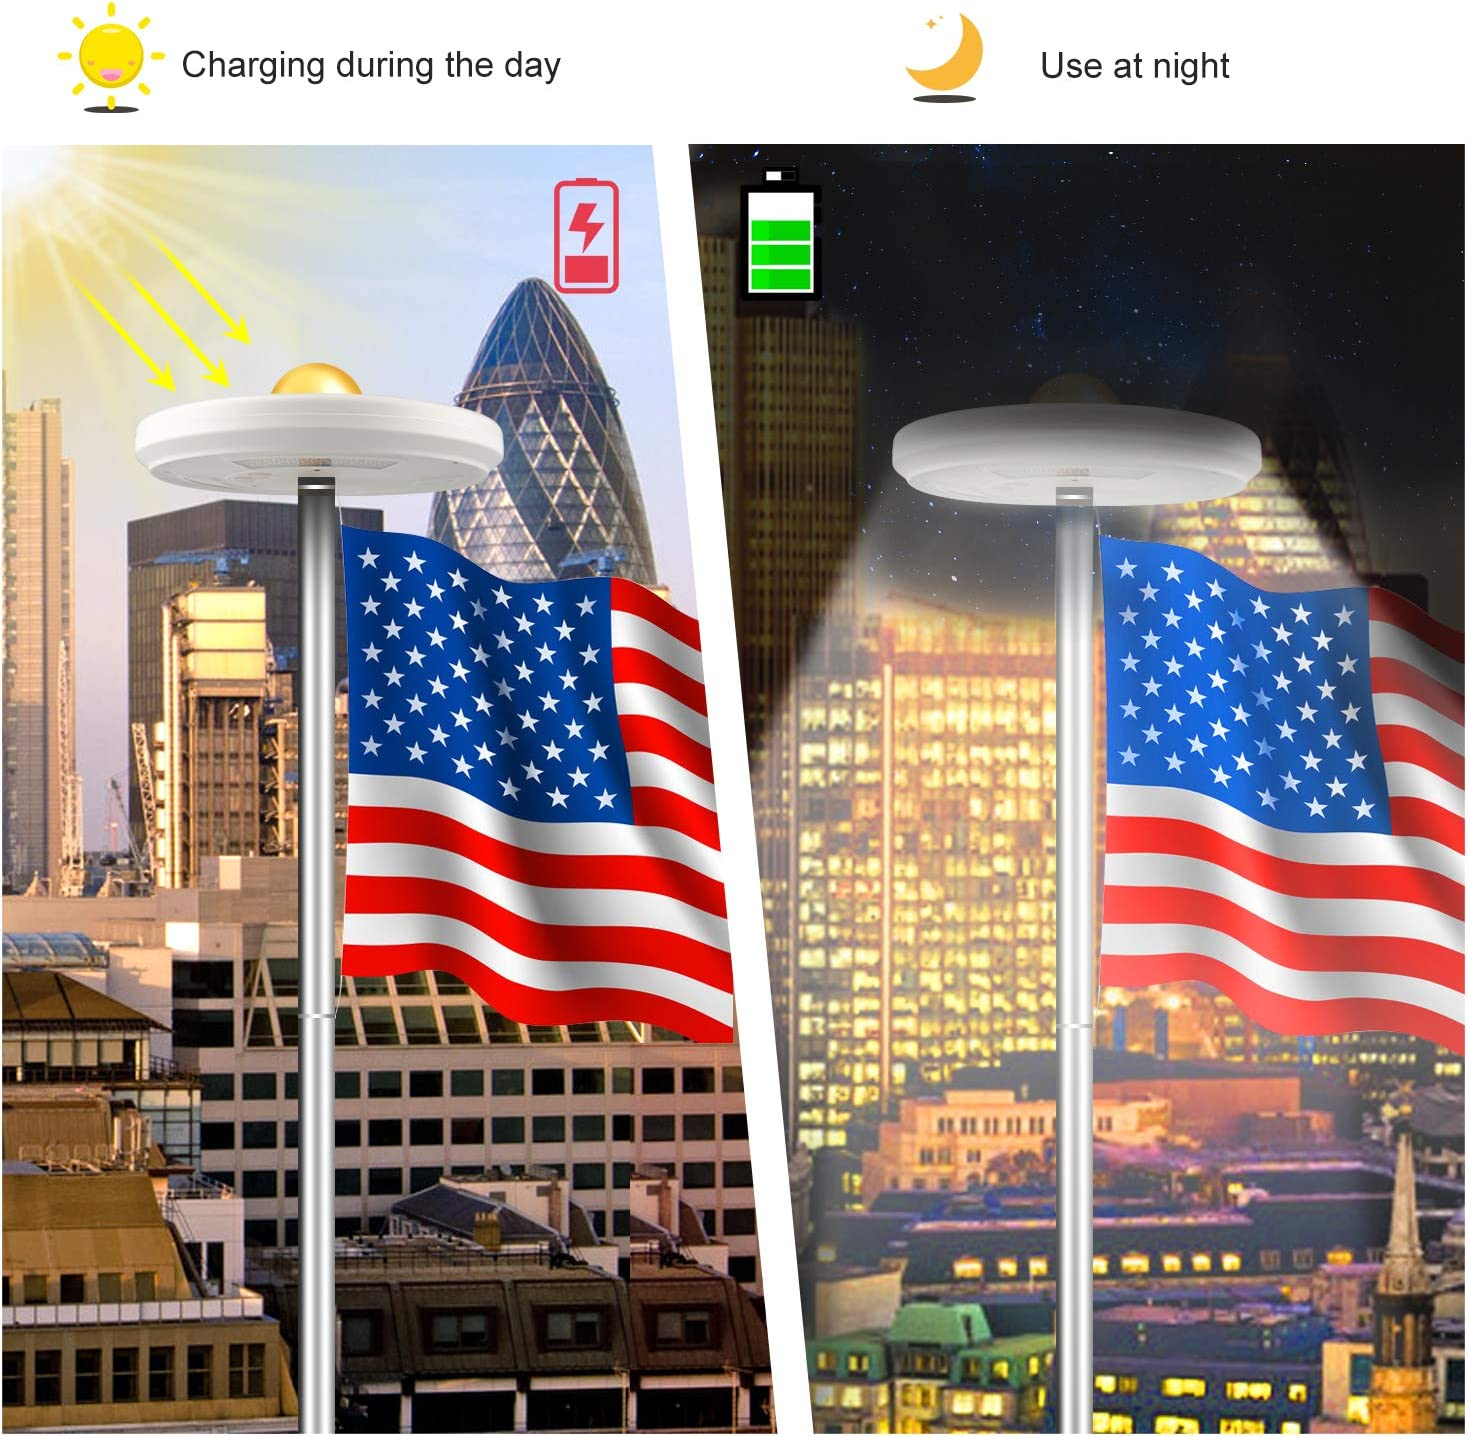 Solar Powered Flag Pole Lights for Longest Lasting Upto 10 Hrs Solar Flag Pole Light 111 led Light Super Bright Flag Pole LED LED Downlight up Flag on Most 15 to 25Ft 100/% Flag Coverage LED